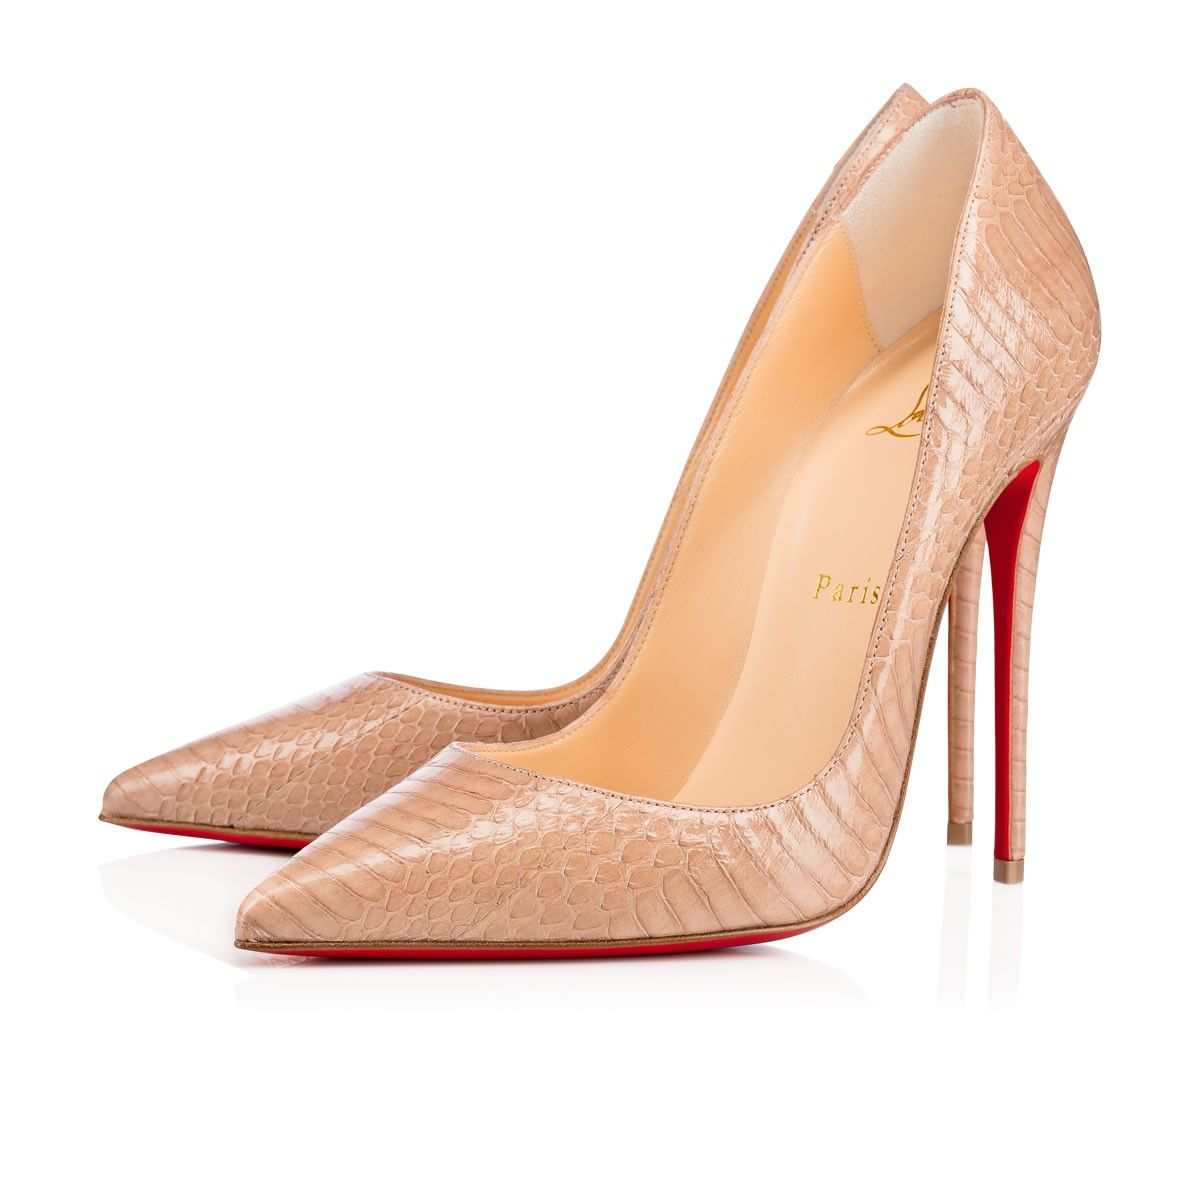 c06b7810e4bc Shoes - So Kate - Christian Louboutin